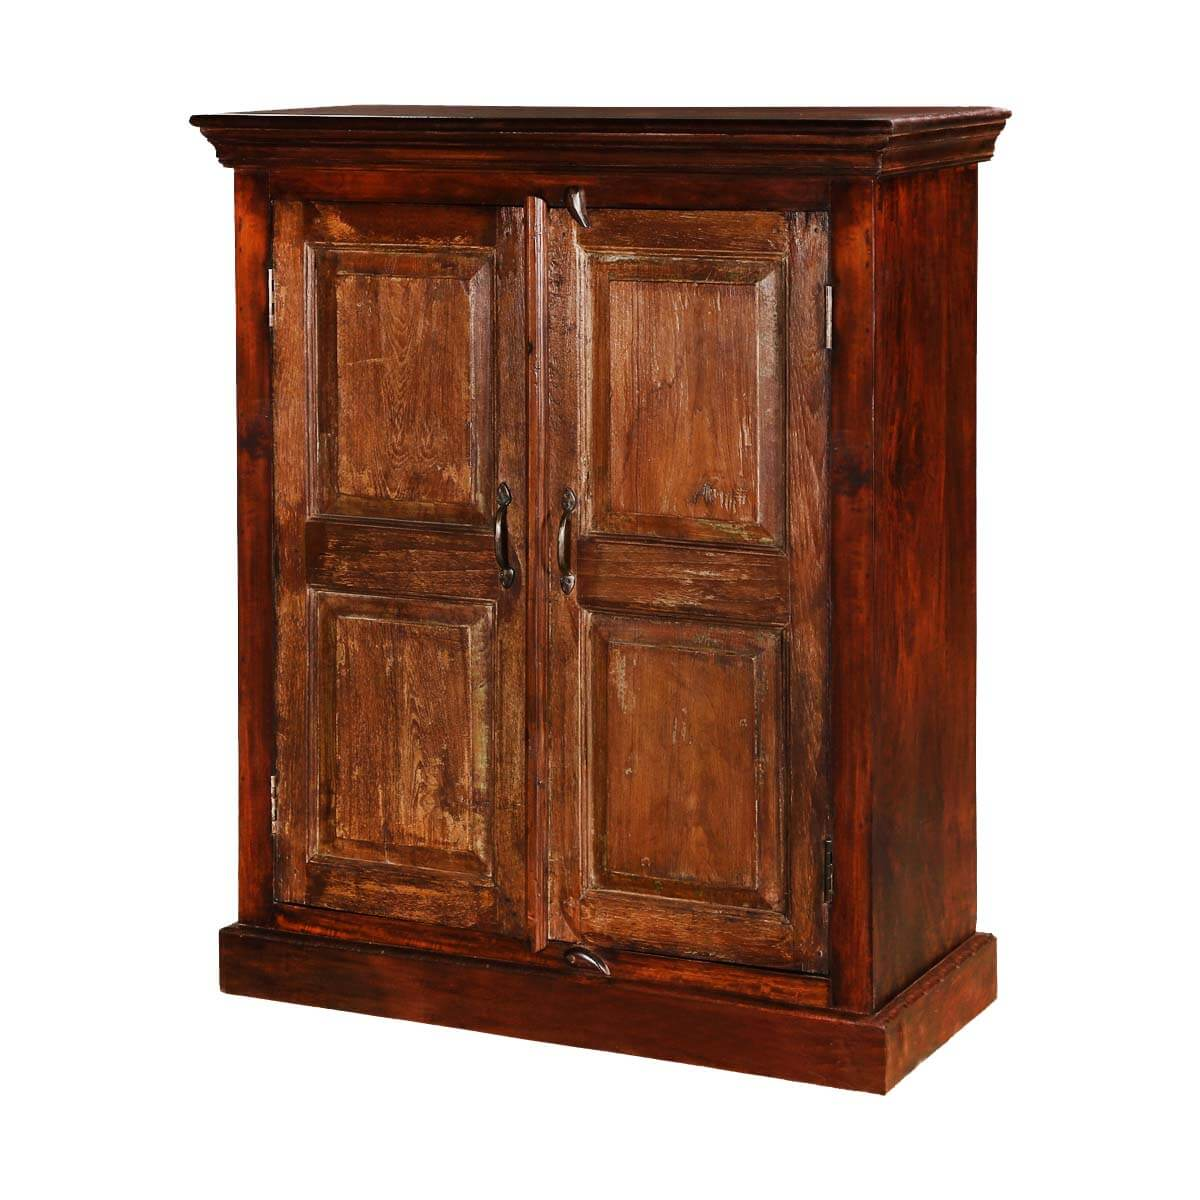 Shaker Rustic Mango & Reclaimed Wood Freestanding Accent. Rugs At Ross. Farm Style Kitchen. Stair Rug. Granite Versus Quartz. Outdoor Decor. Metal Ottoman. In Wall Medicine Cabinet. Contemporary Exterior Doors